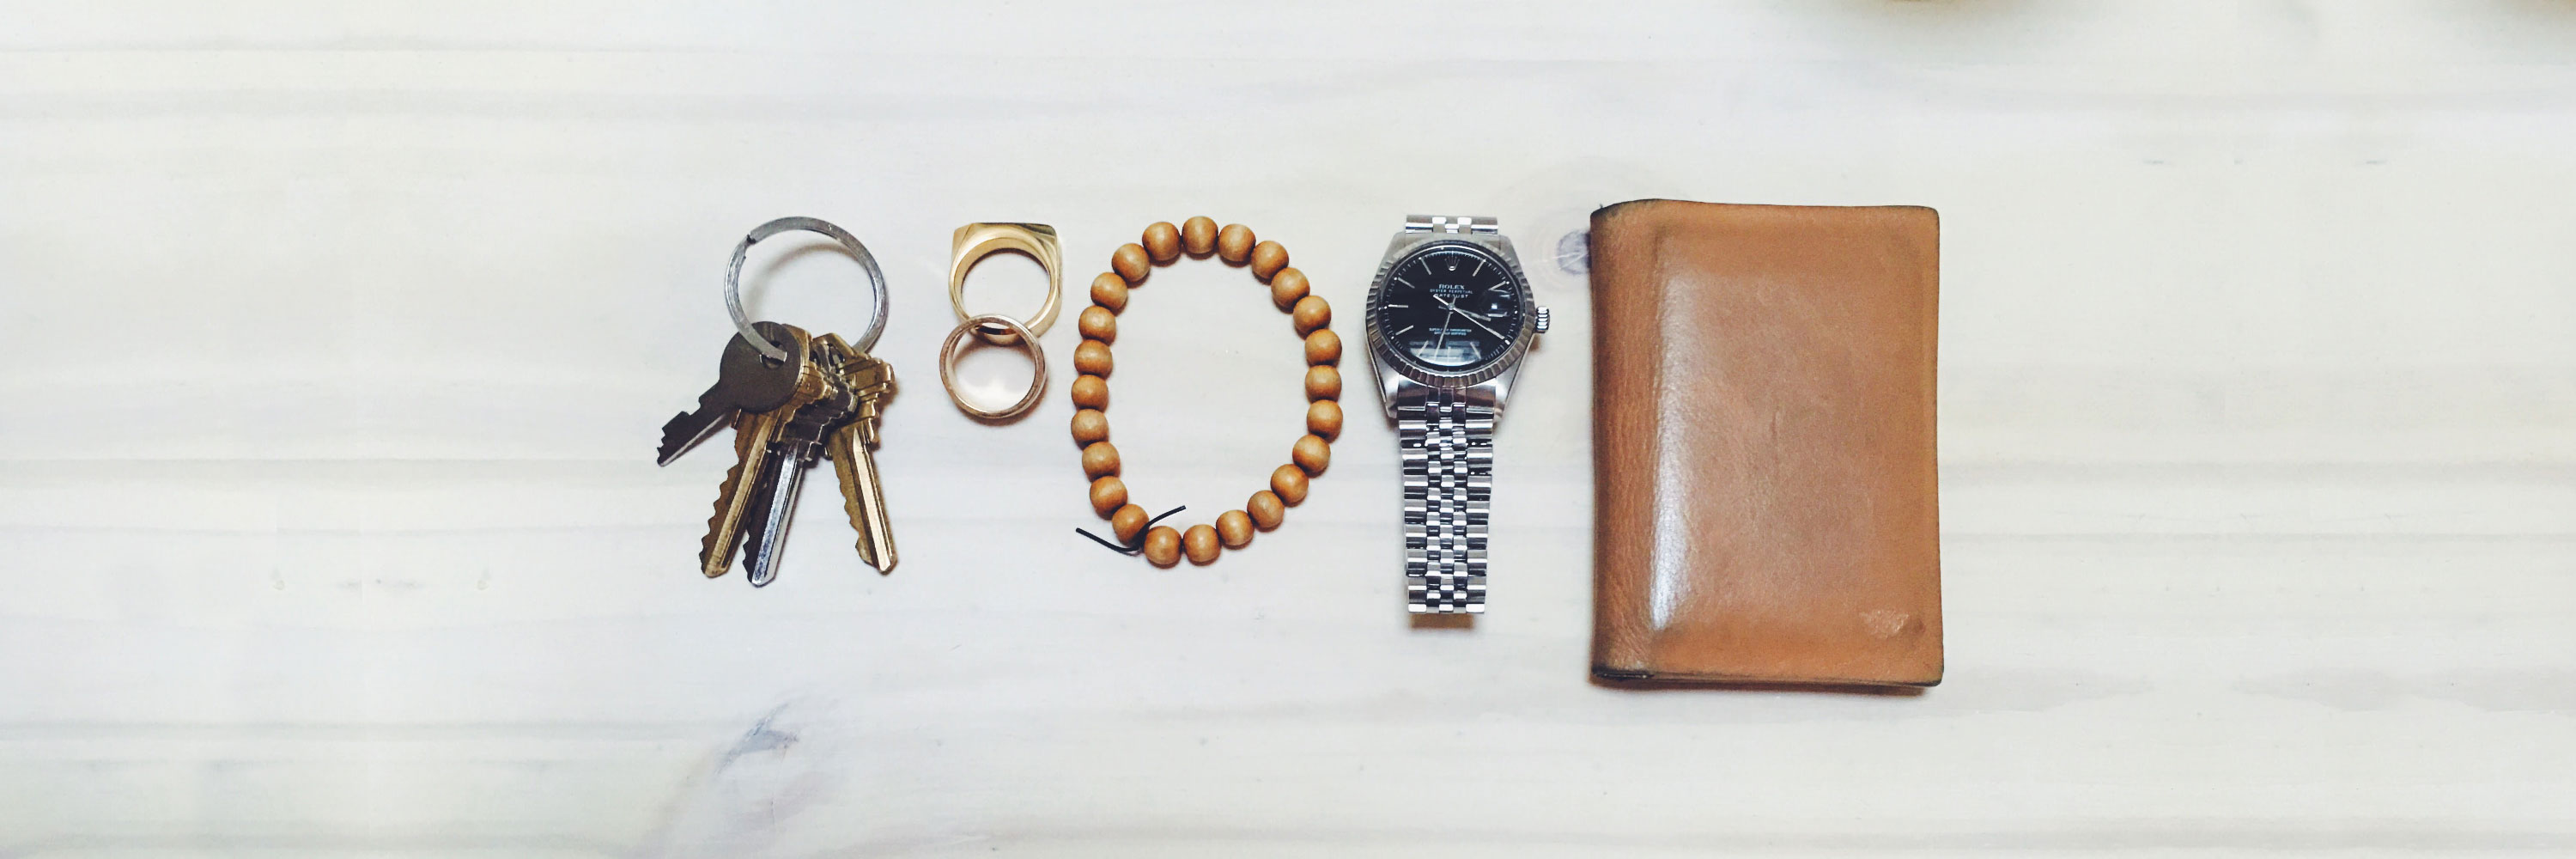 flatlay image of keys, rings, bracelet, watch, and wallet - the typical urban edc kit